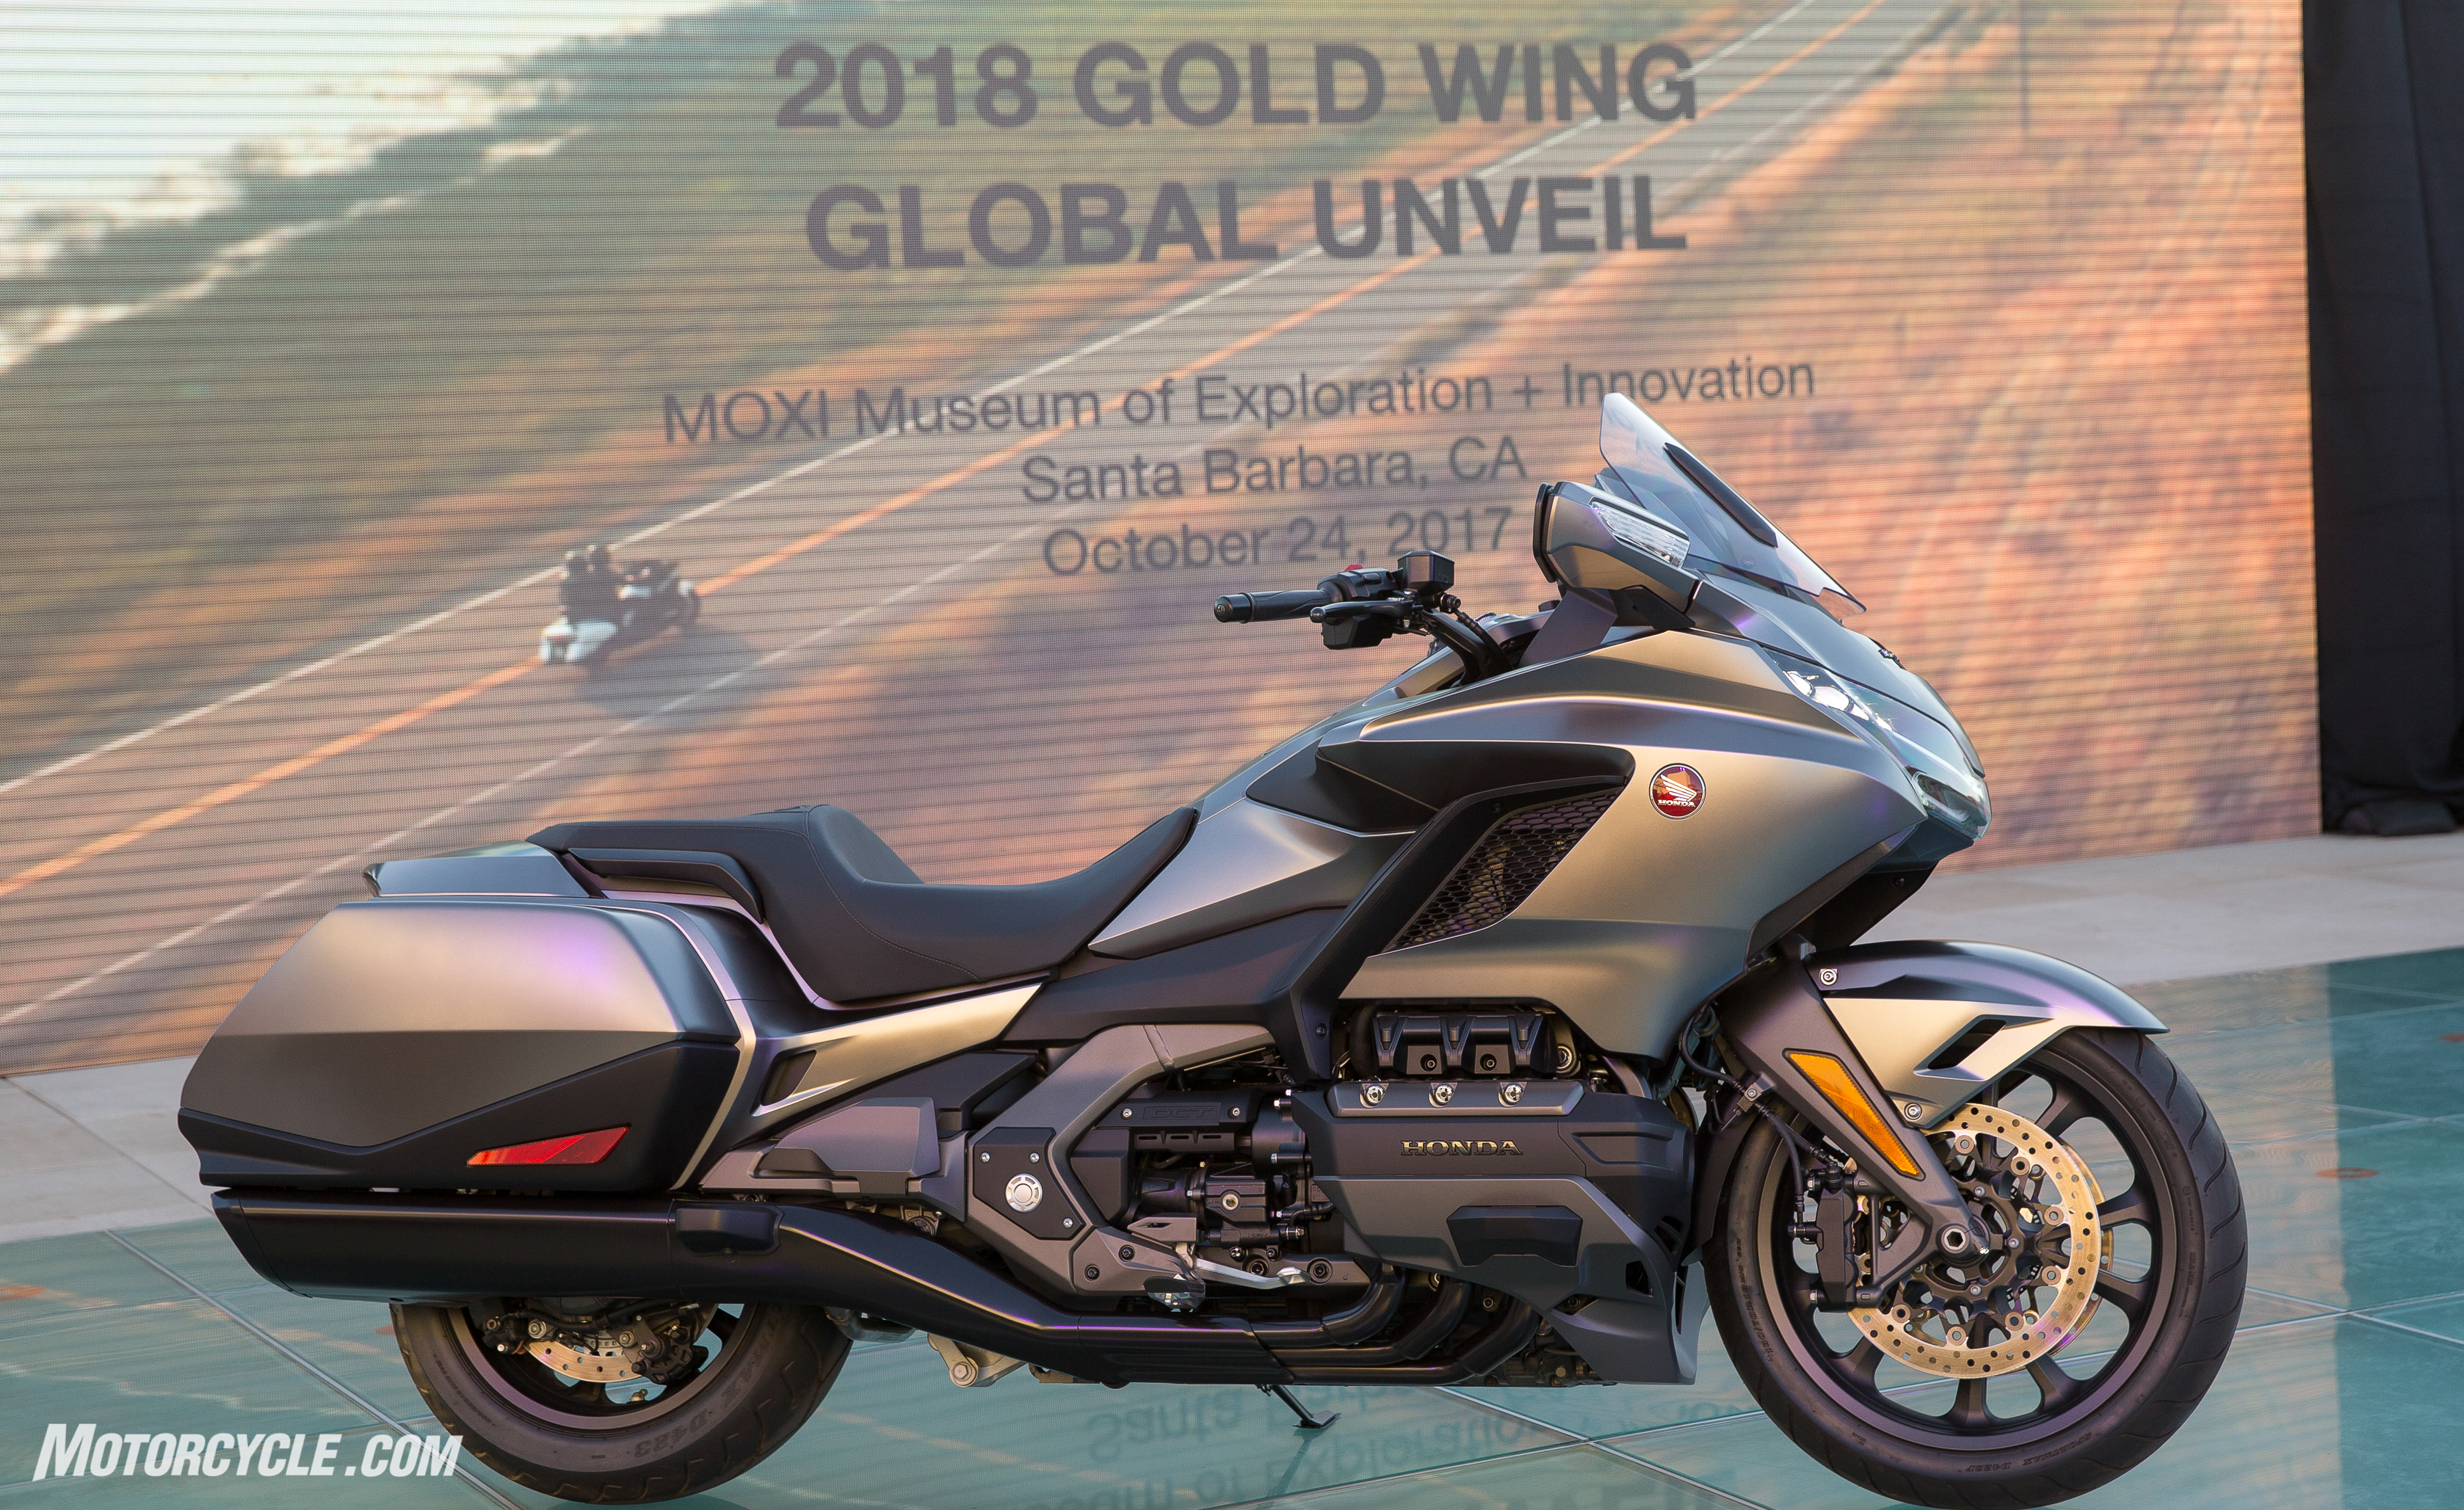 Top 10 Facts About The 2018 Honda Gold Wing